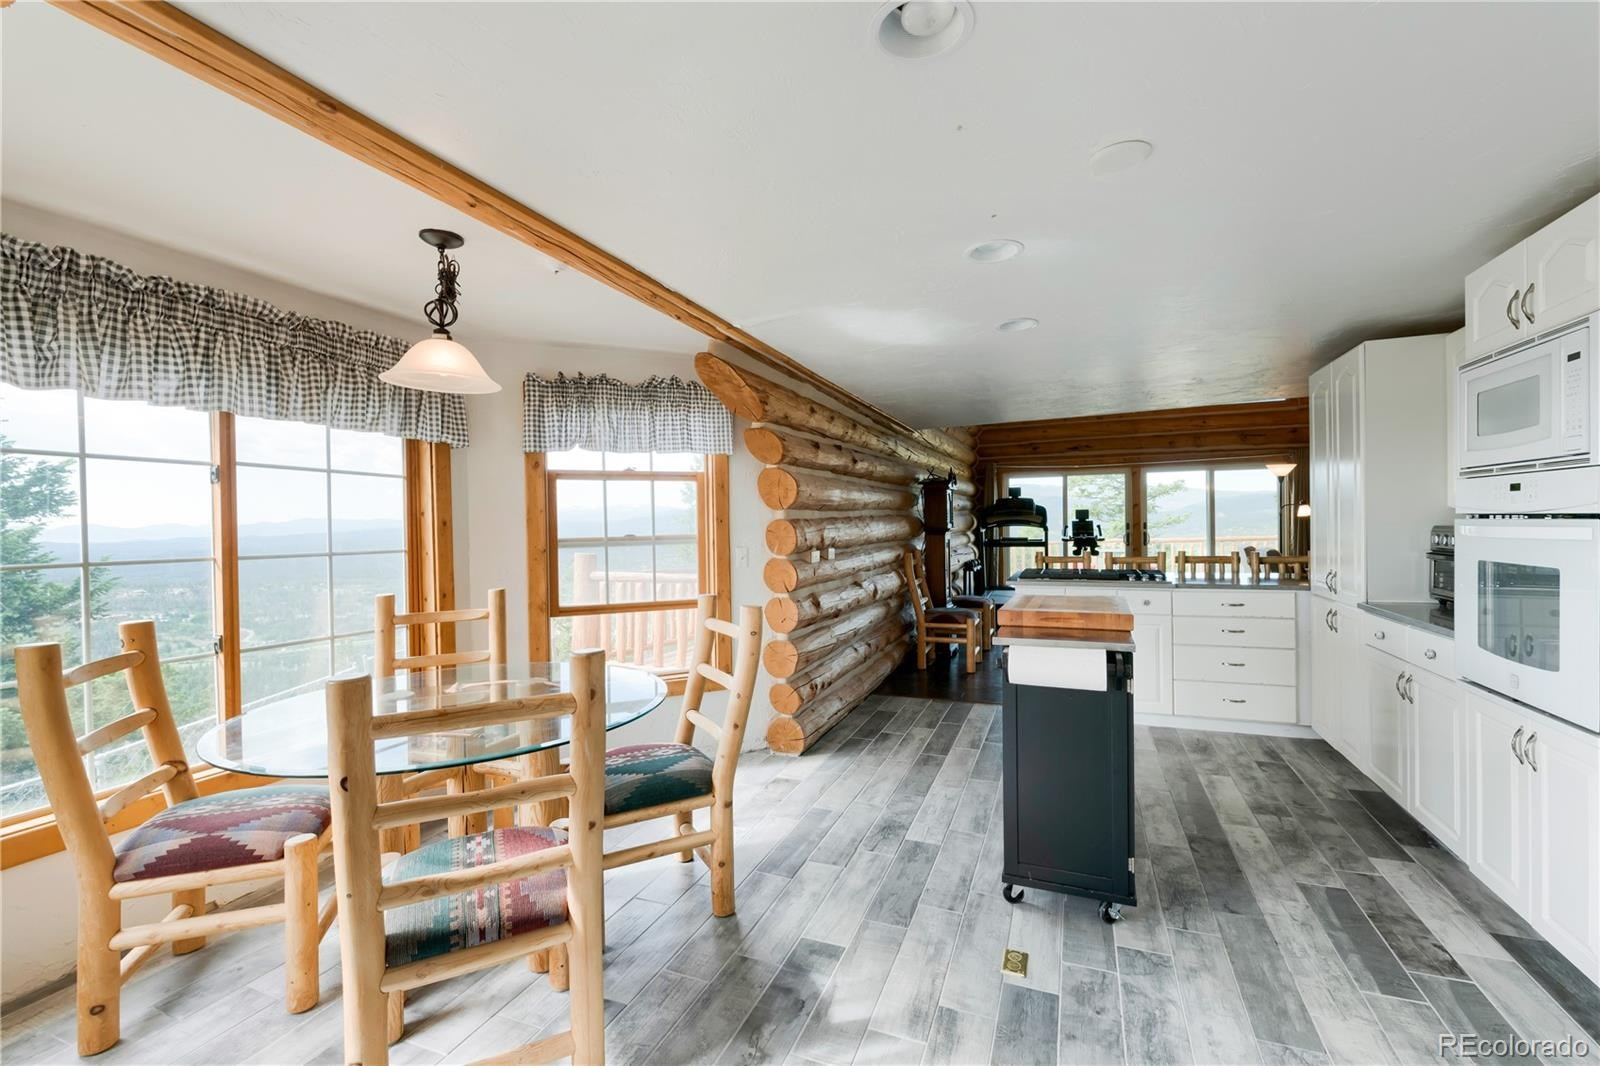 MLS# 3602520 - 22 - 107 Piegan Court, Red Feather Lakes, CO 80545